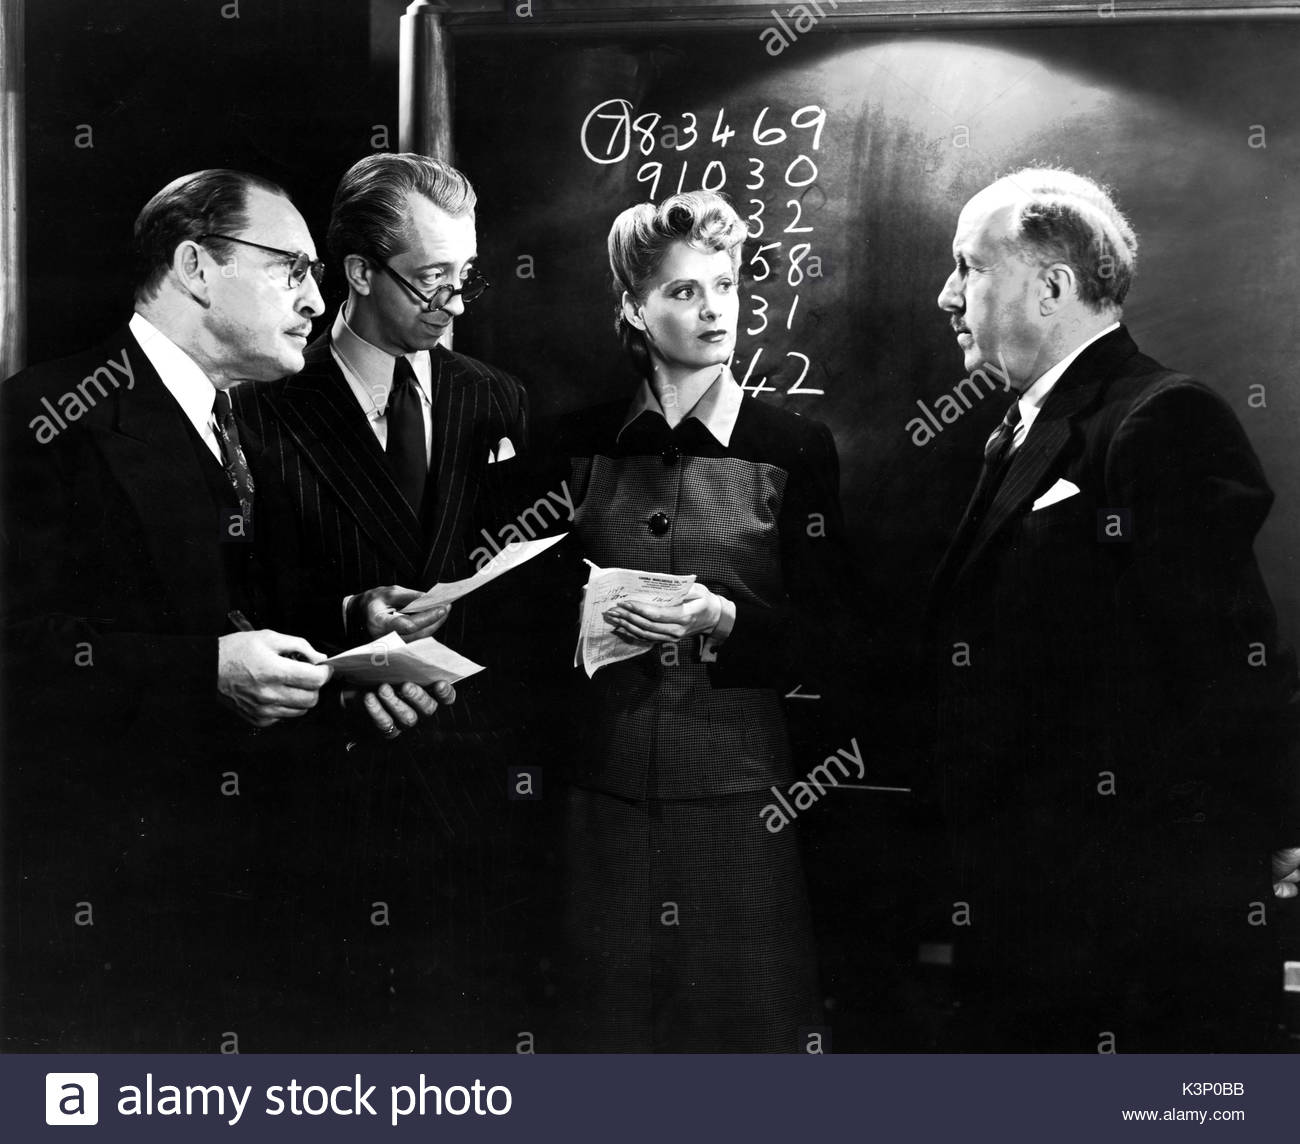 secrets-of-scotland-yard-us-1944-l-r-lionel-atwill-john-abbott-stephanie-matthew boulton.jpg